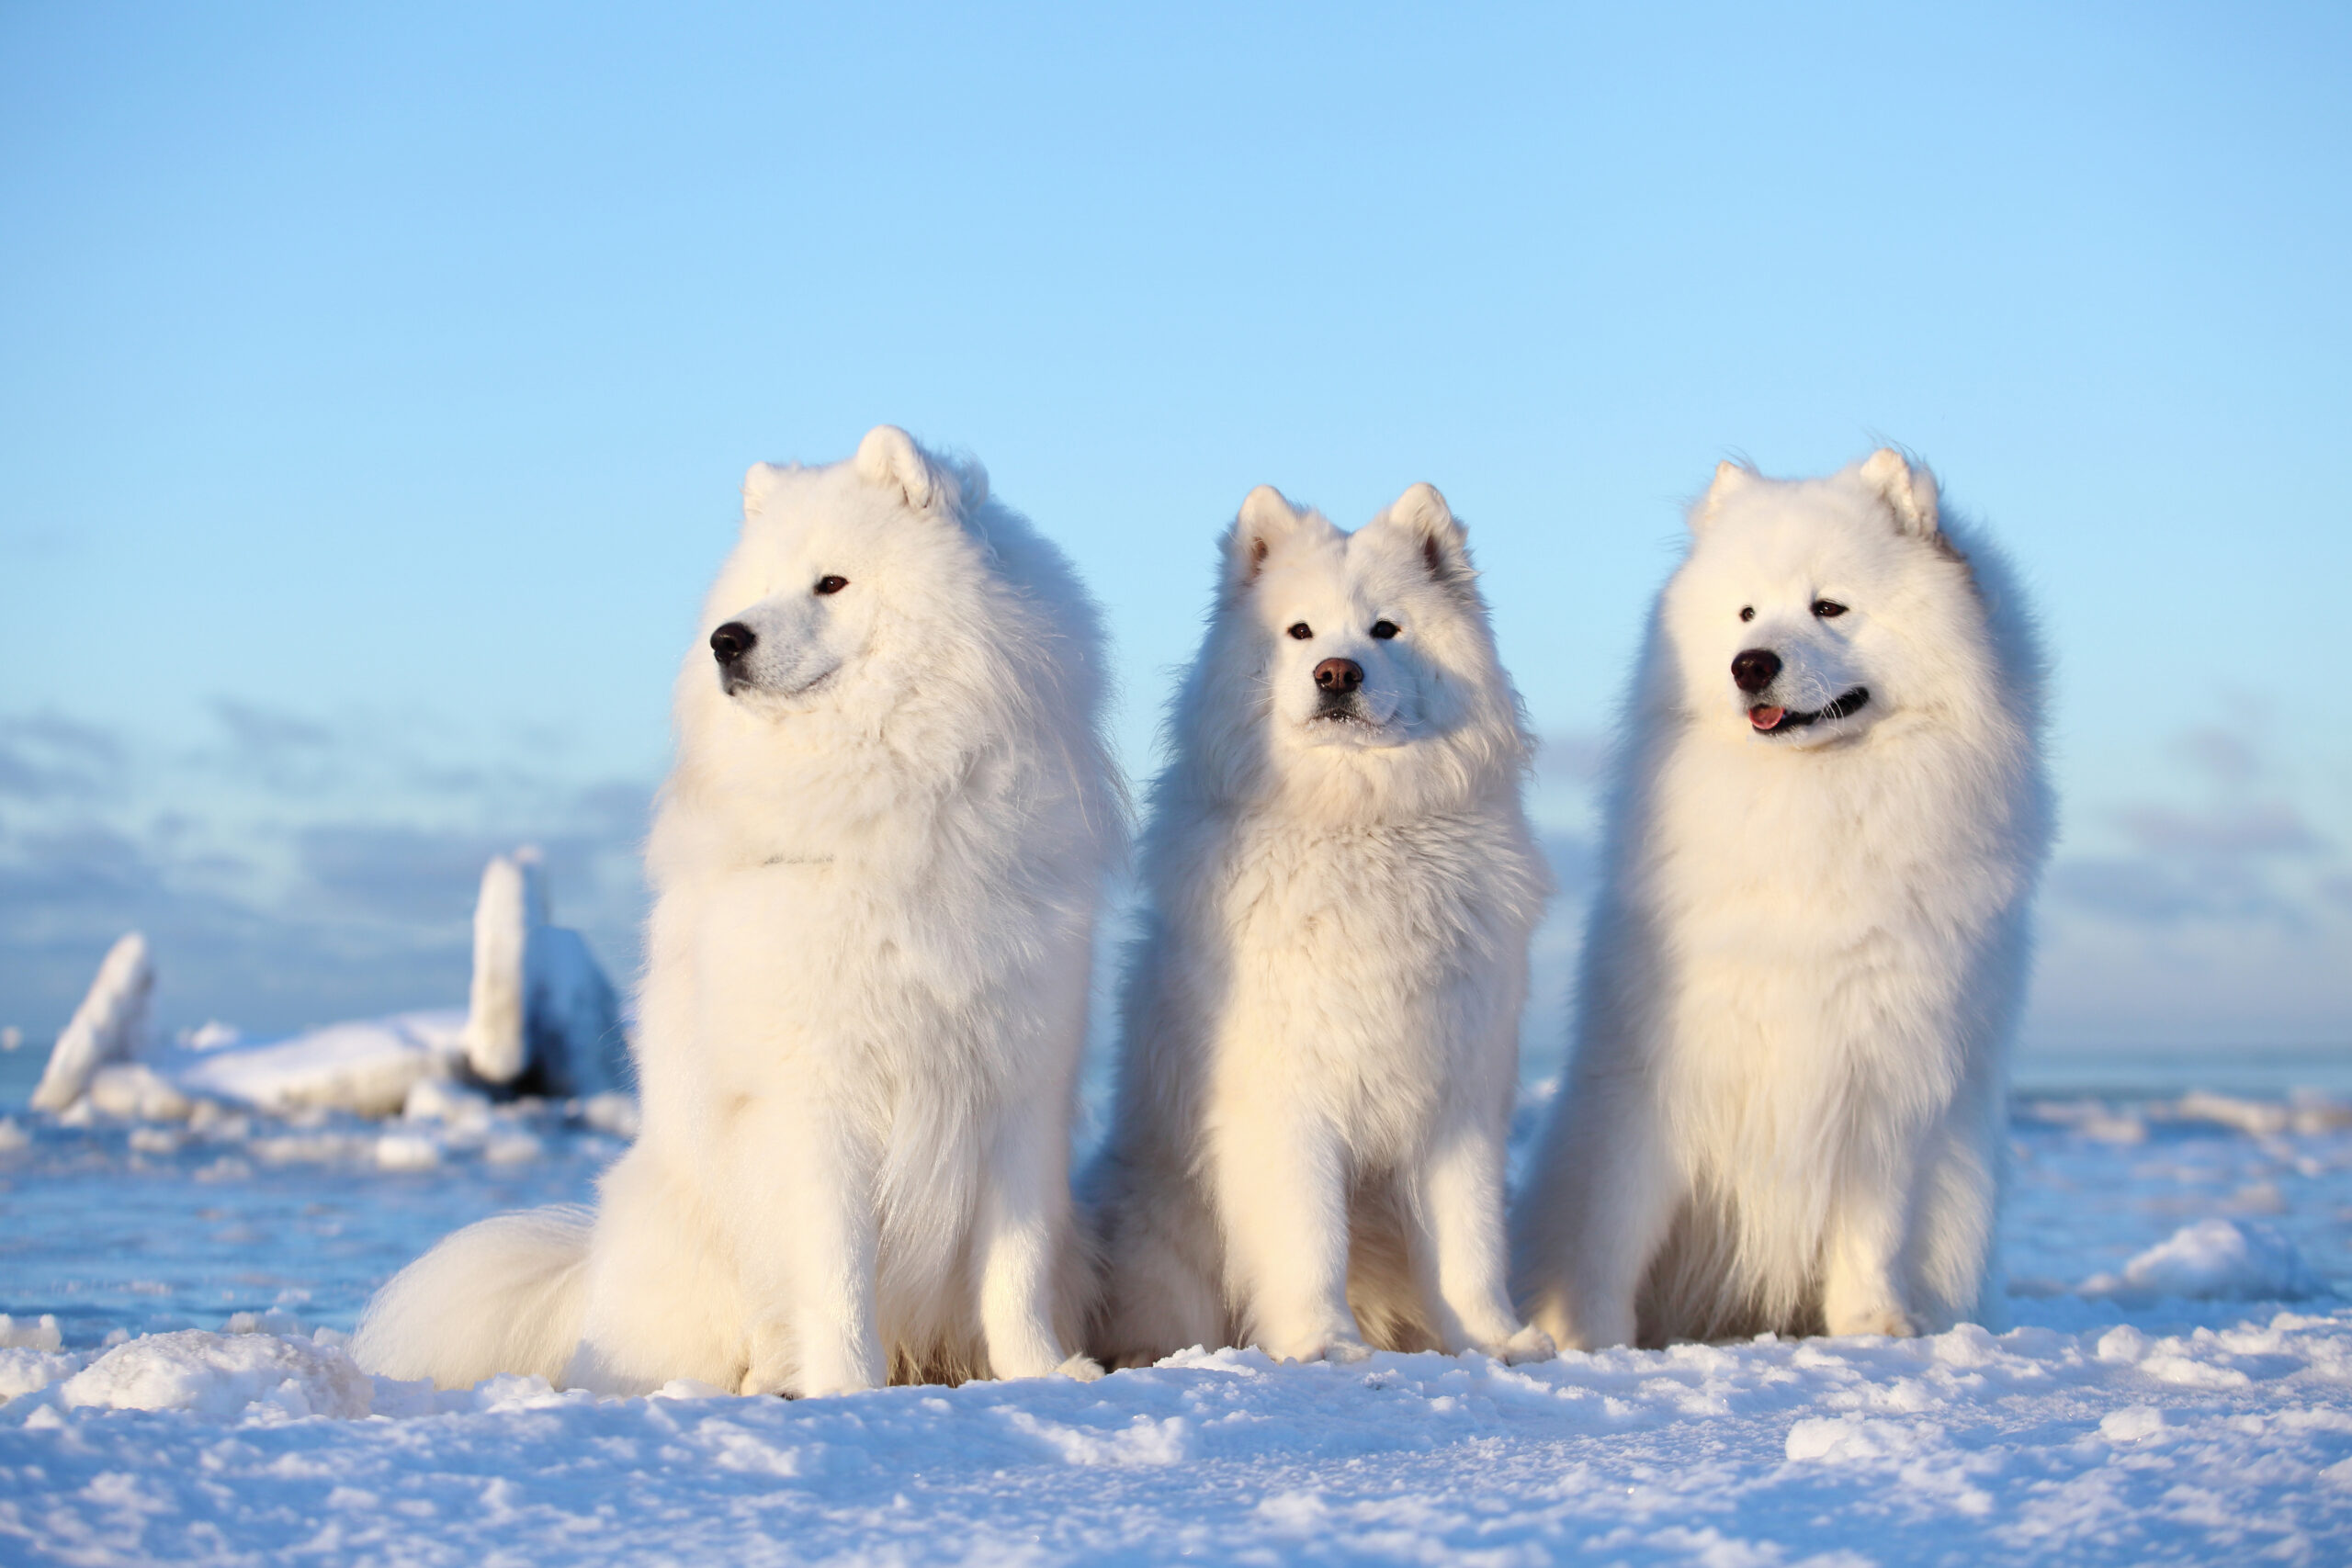 Three Samoyed dogs sitting in the snow in front of a blue sky